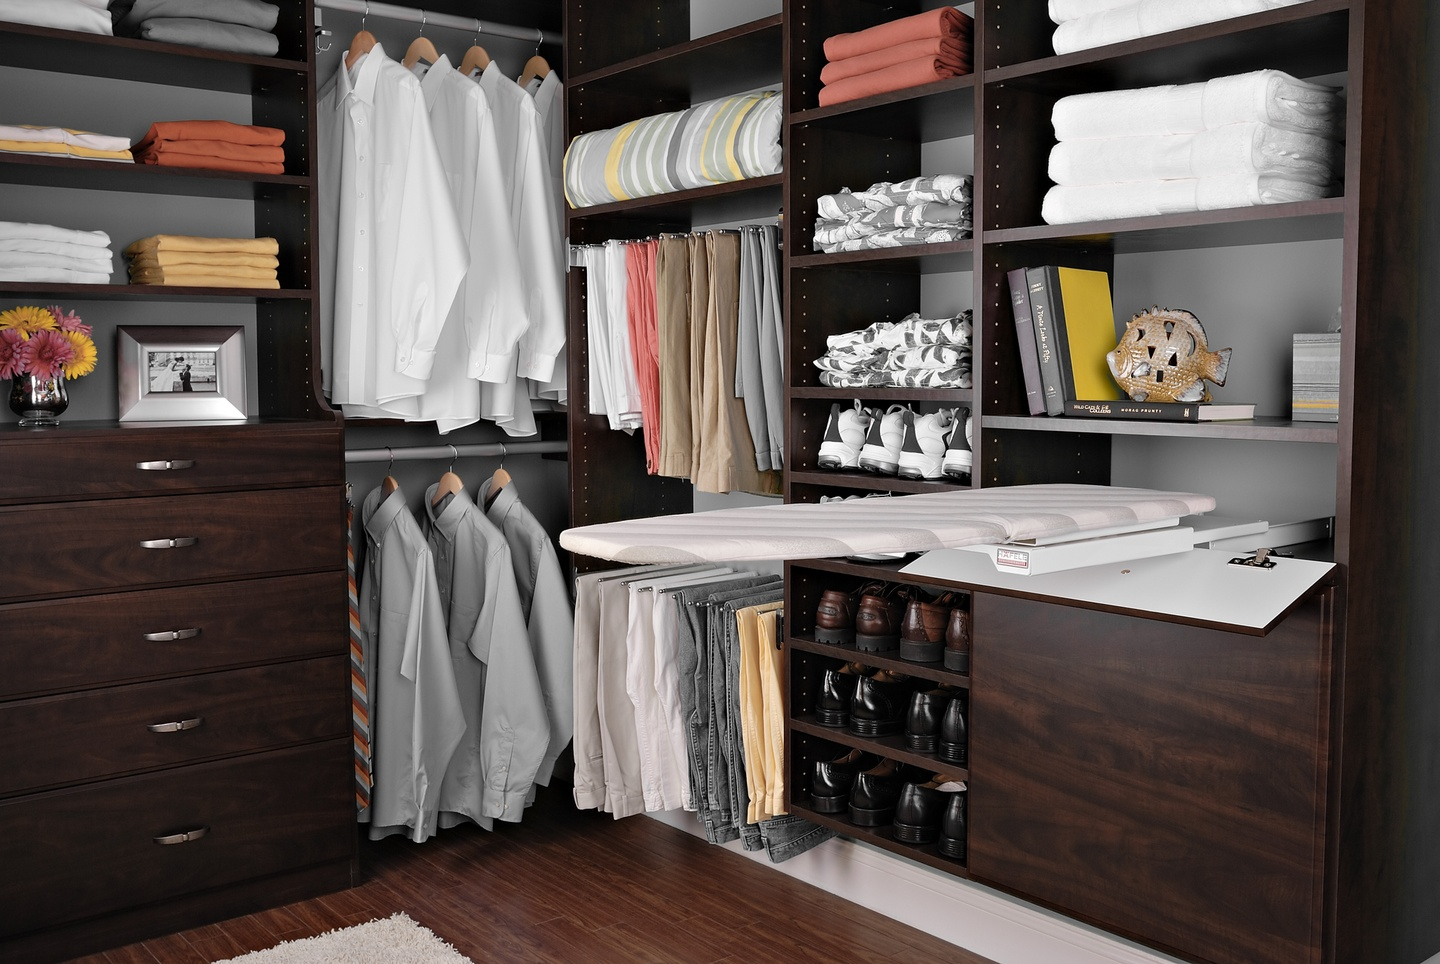 brilliant organizer closet california reviews for coupons com your components costco clothes easyclosets closets easy discounts systems wholesale ideas o